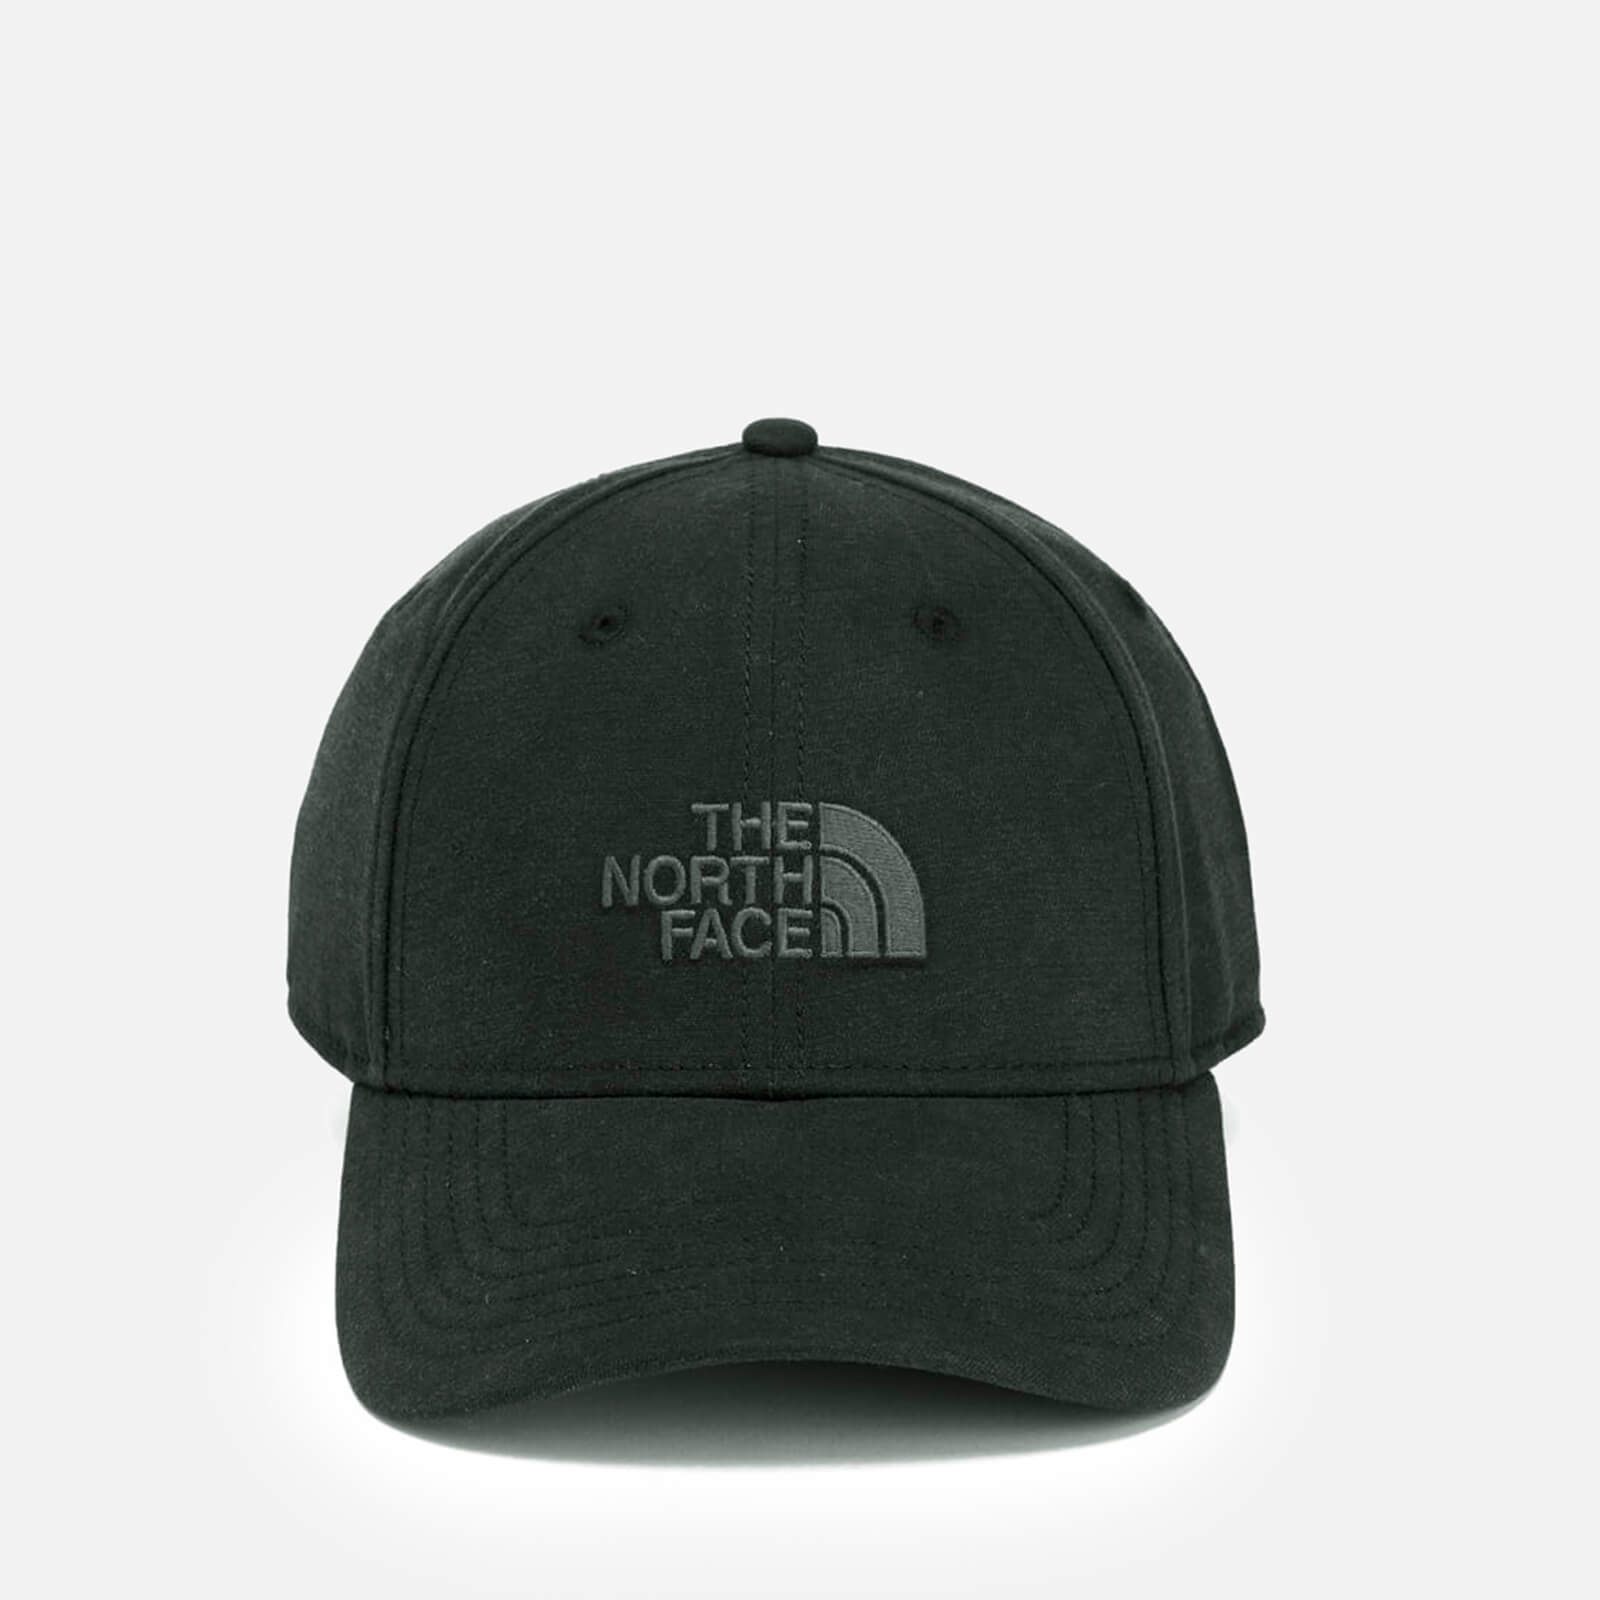 3807120f070e7 The North Face Classic 66 Hat - TNF Black Clothing